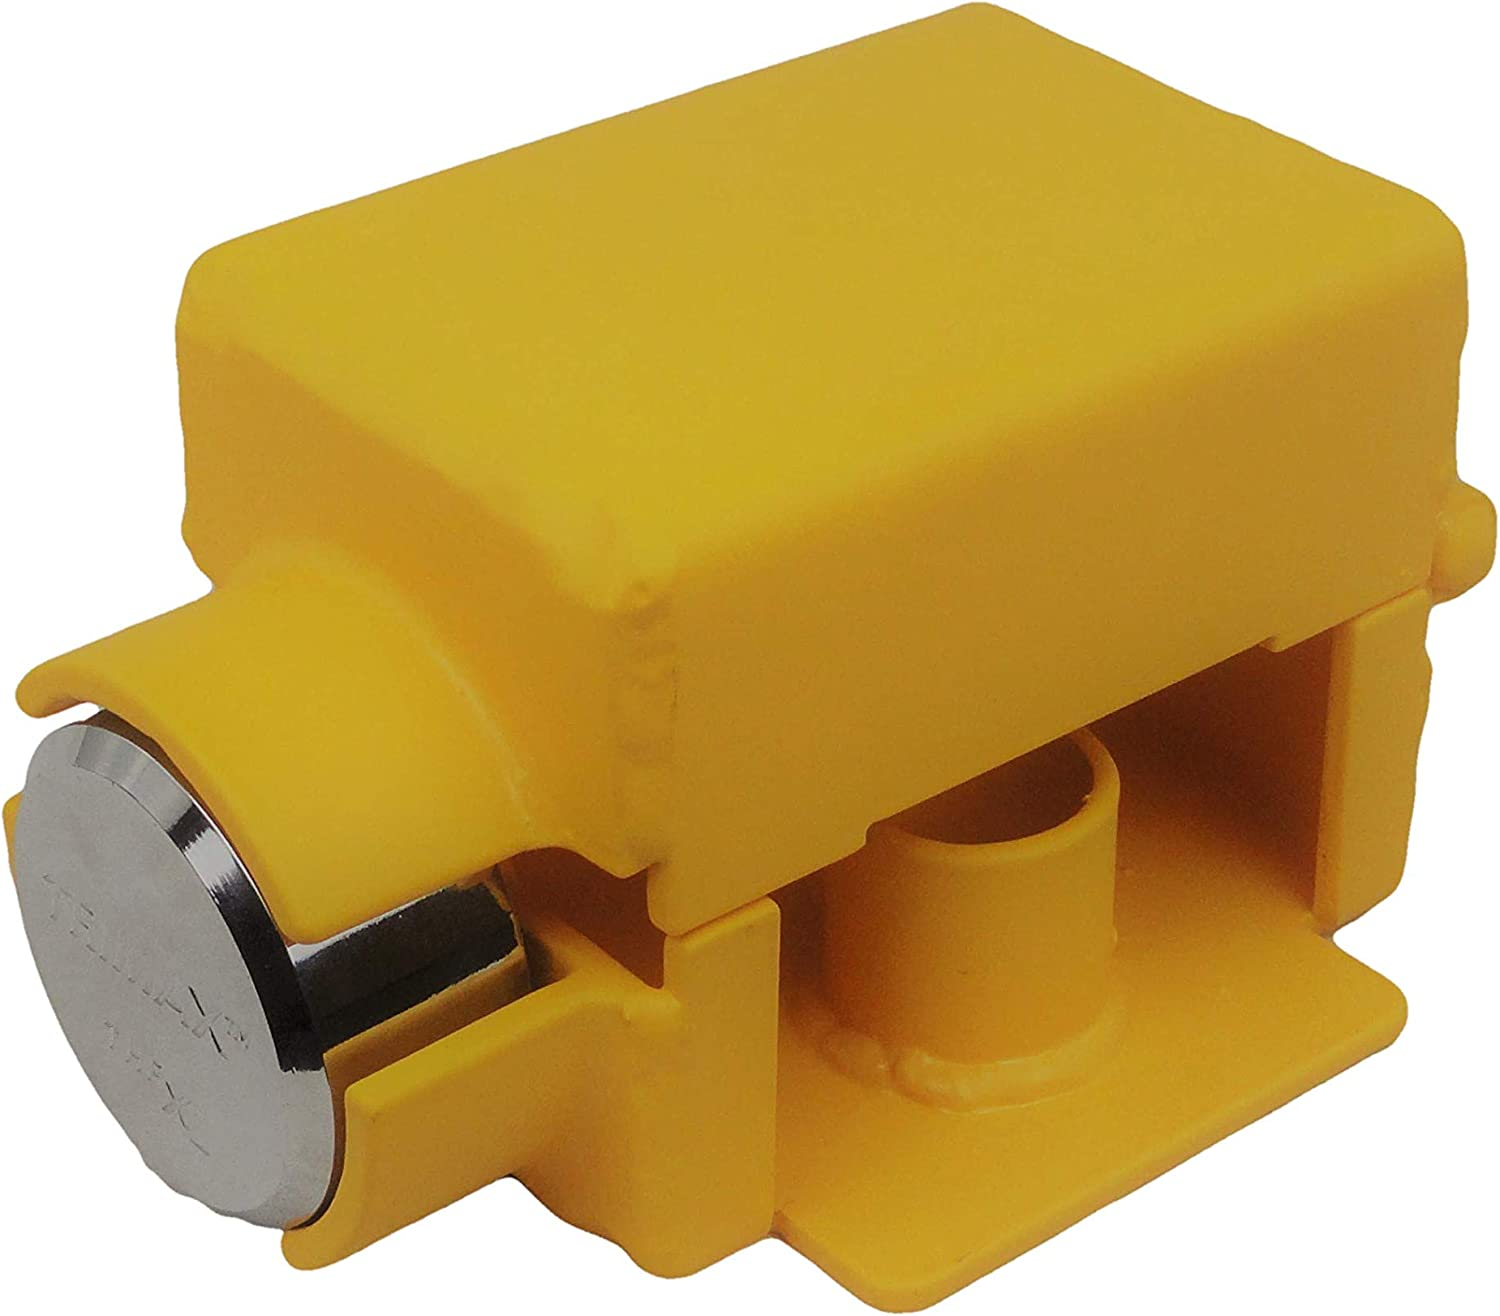 Ft. Knox Locks Curt Style Bumper Pull Lock W/Trimax Puck Lock- Bolt Cutter Proof (Only fits couplers Shown)